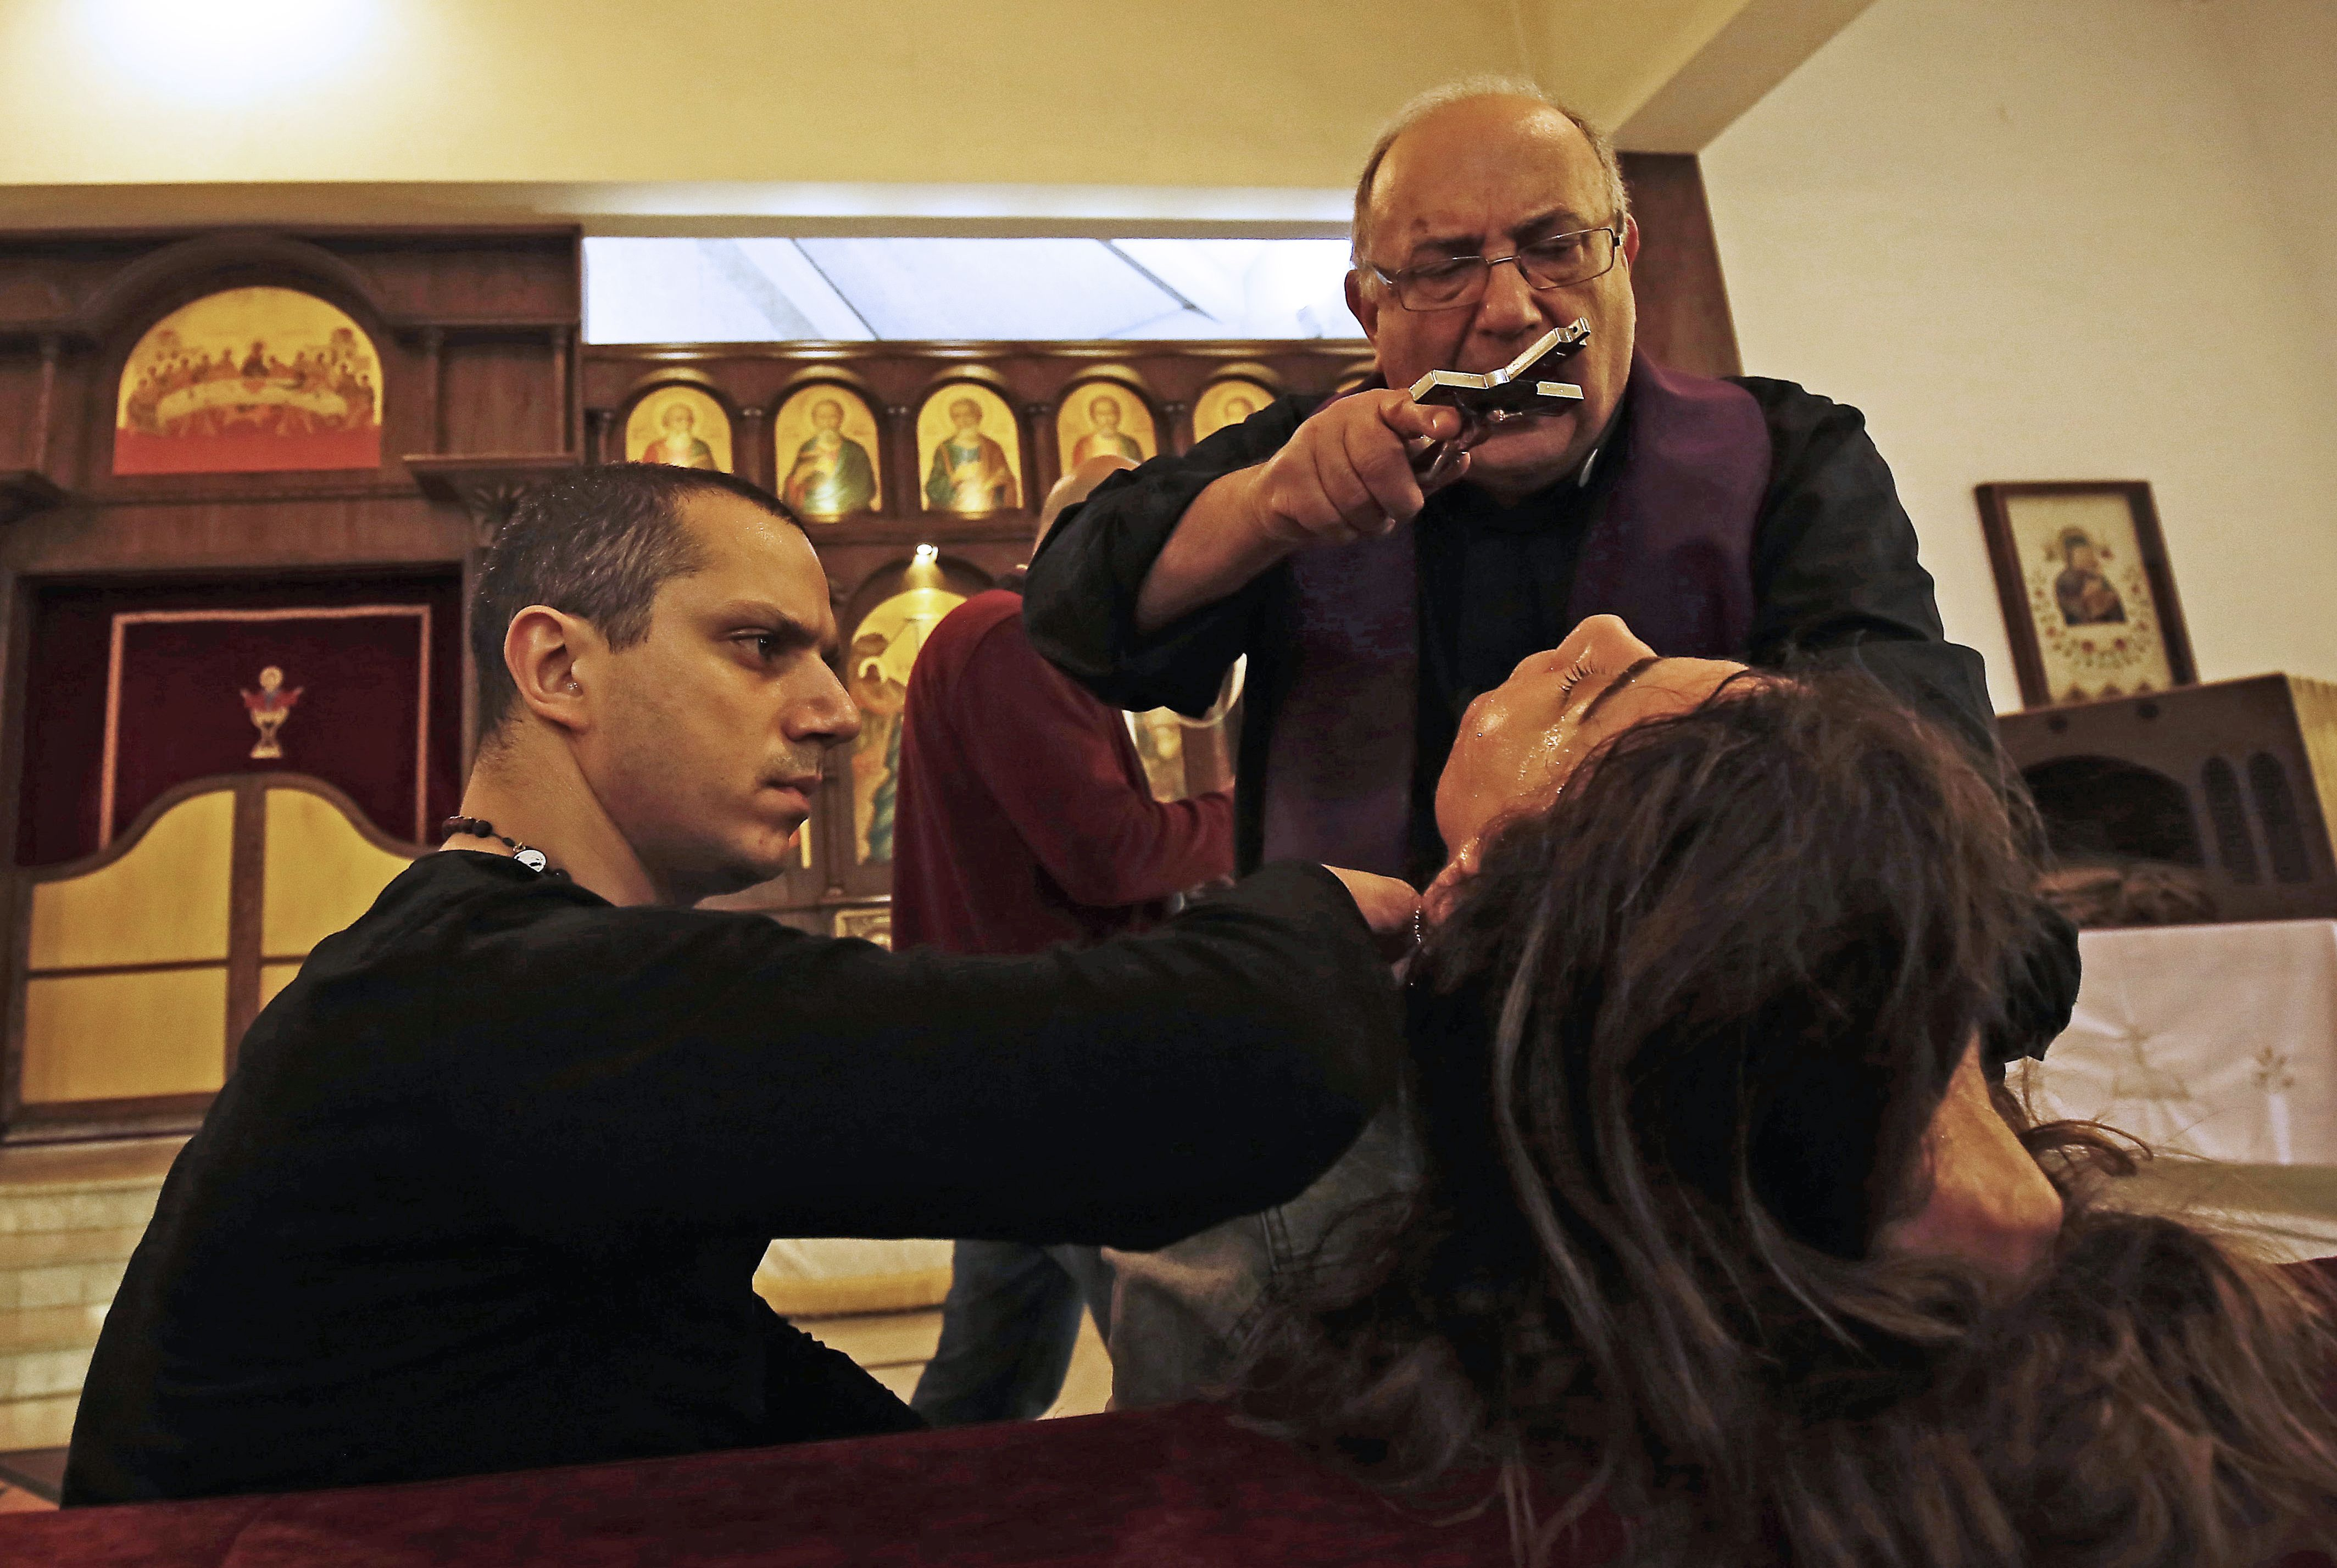 Father Elias Rahal, 68, performs exorcism ritual on a Lebanese lady at a church in the district of Mina in the northern port city of Tripoli on April 19, 2018. (IBRAHIM CHALHOUB/AFP/Getty Images)